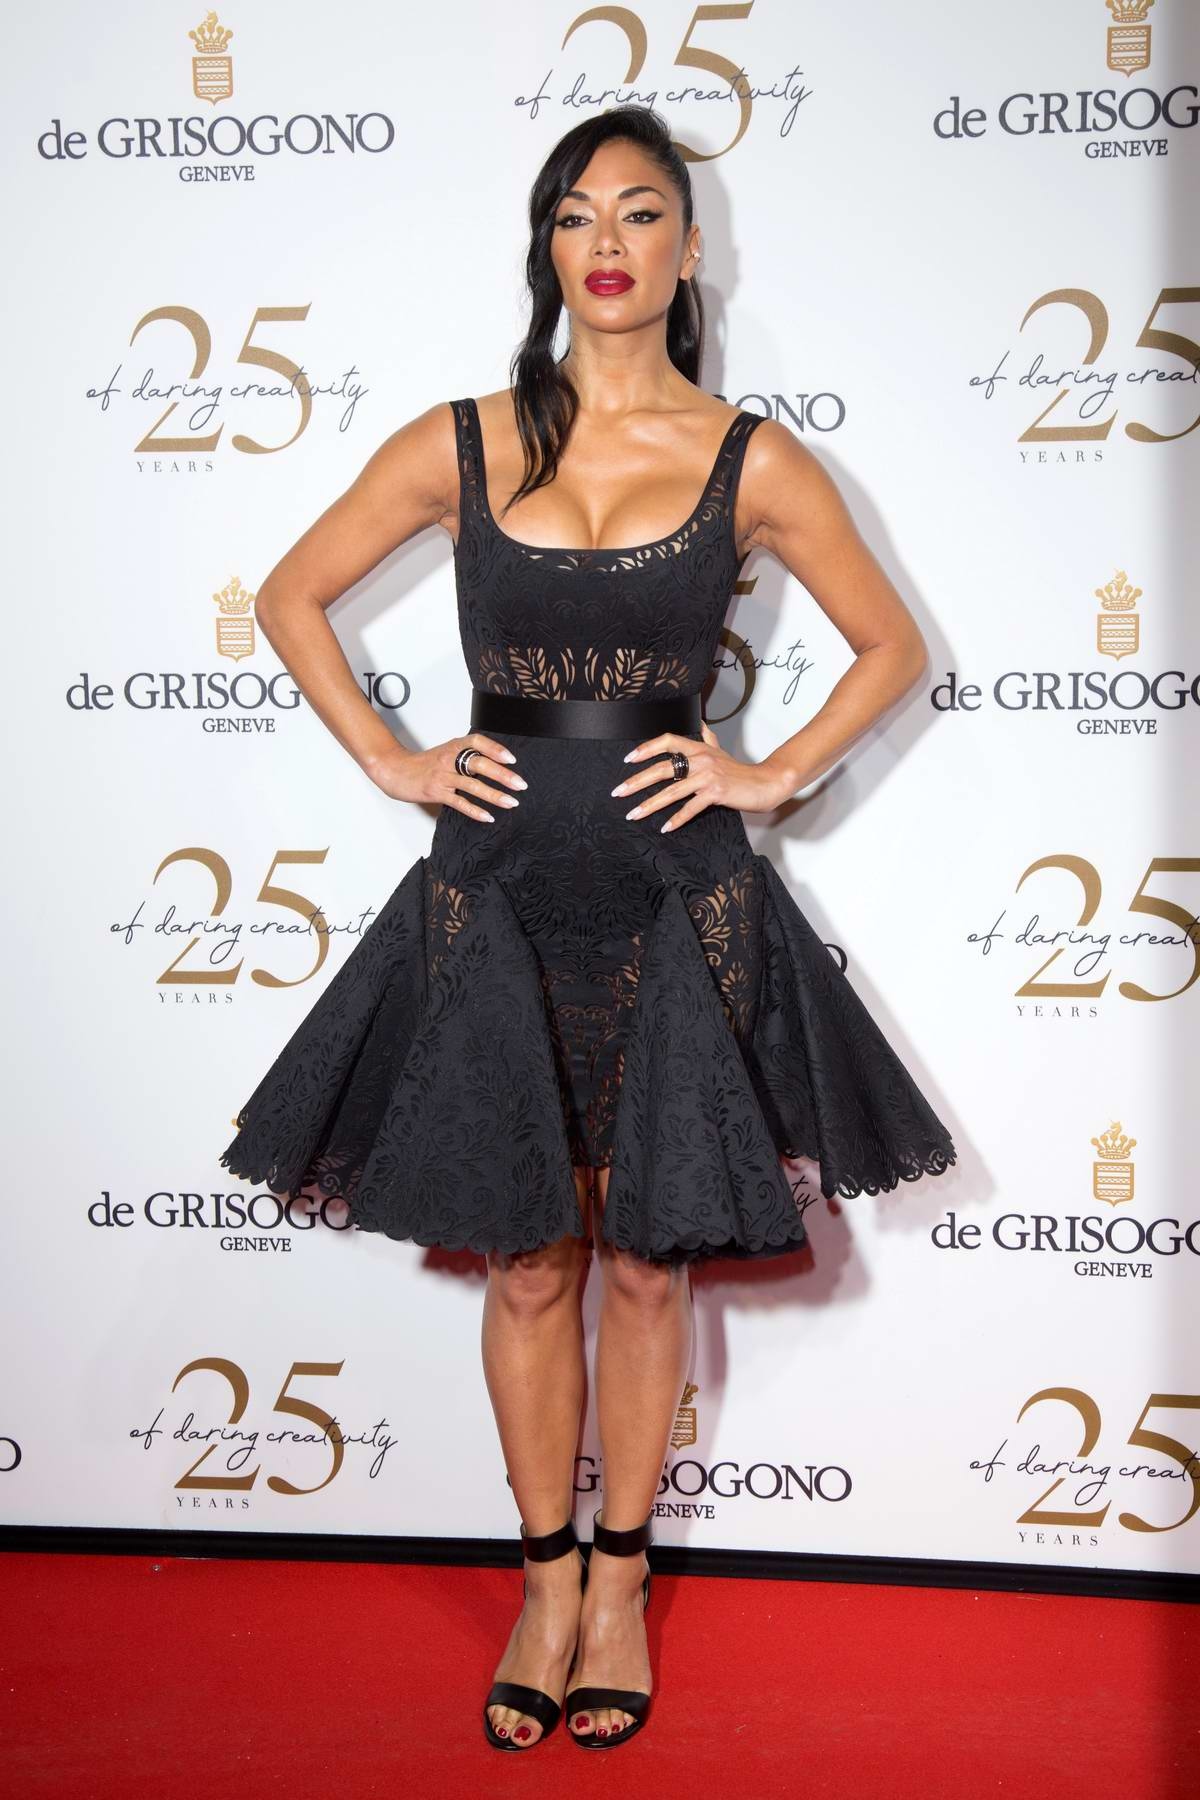 Nicole Scherzinger attends the De Grisogono party during the 71st annual Cannes Film Festival in Cannes, France